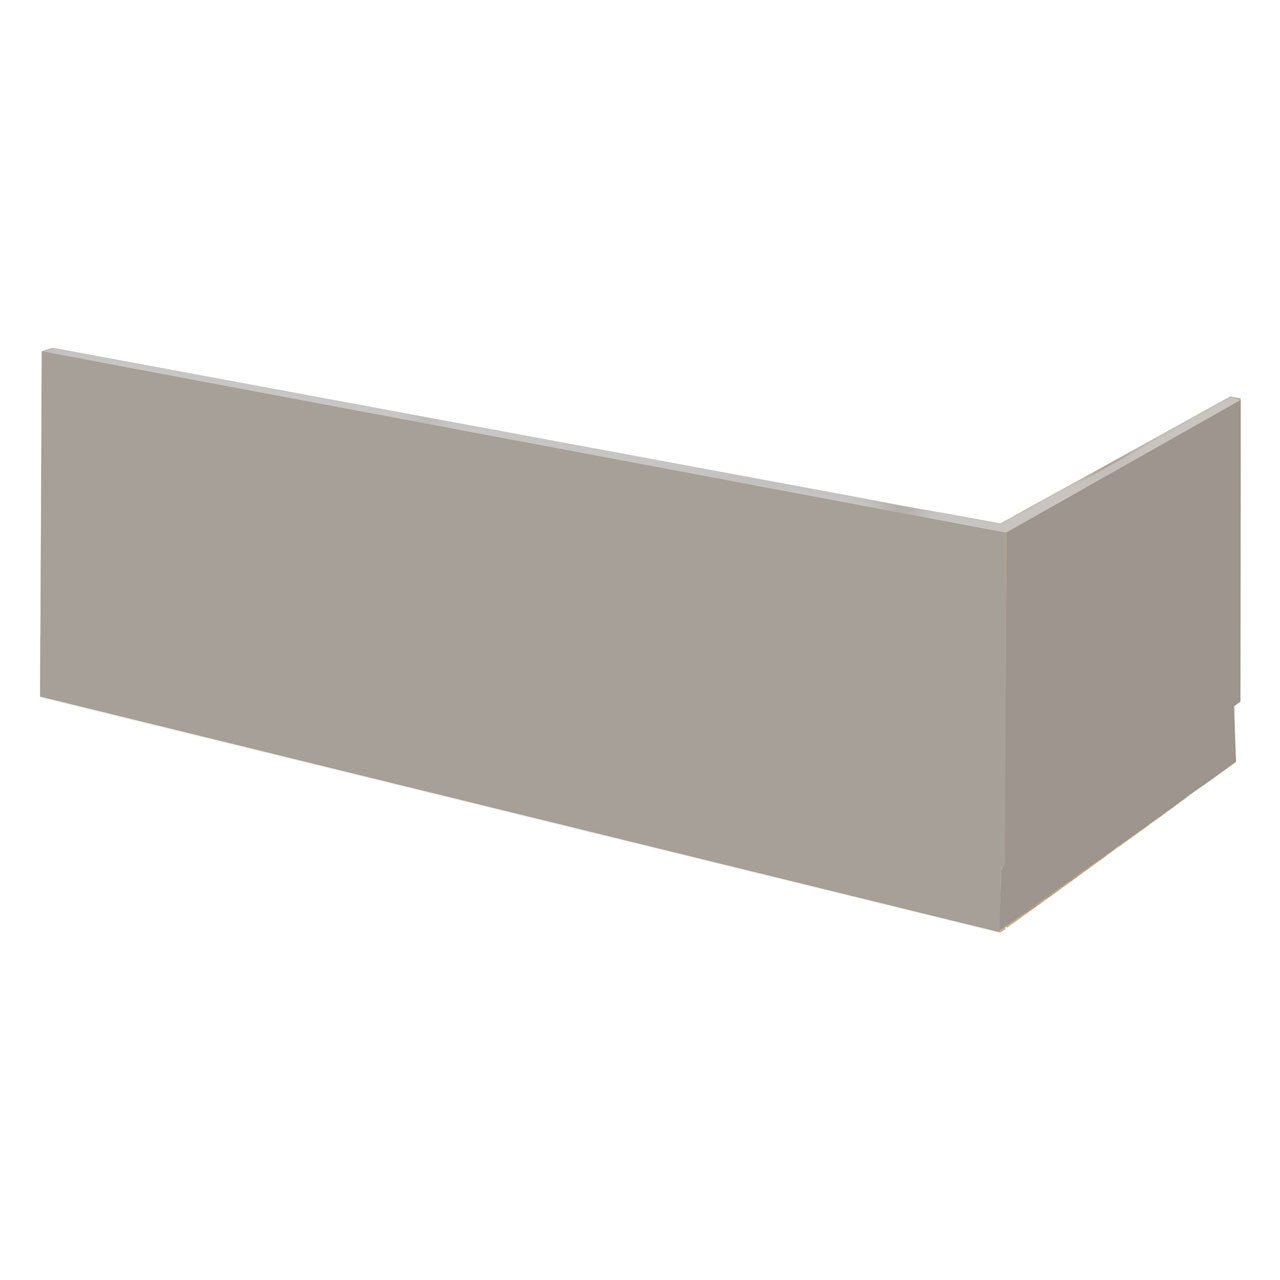 Premier Athena Stone Grey 750mm End Bath Panel - MPC412